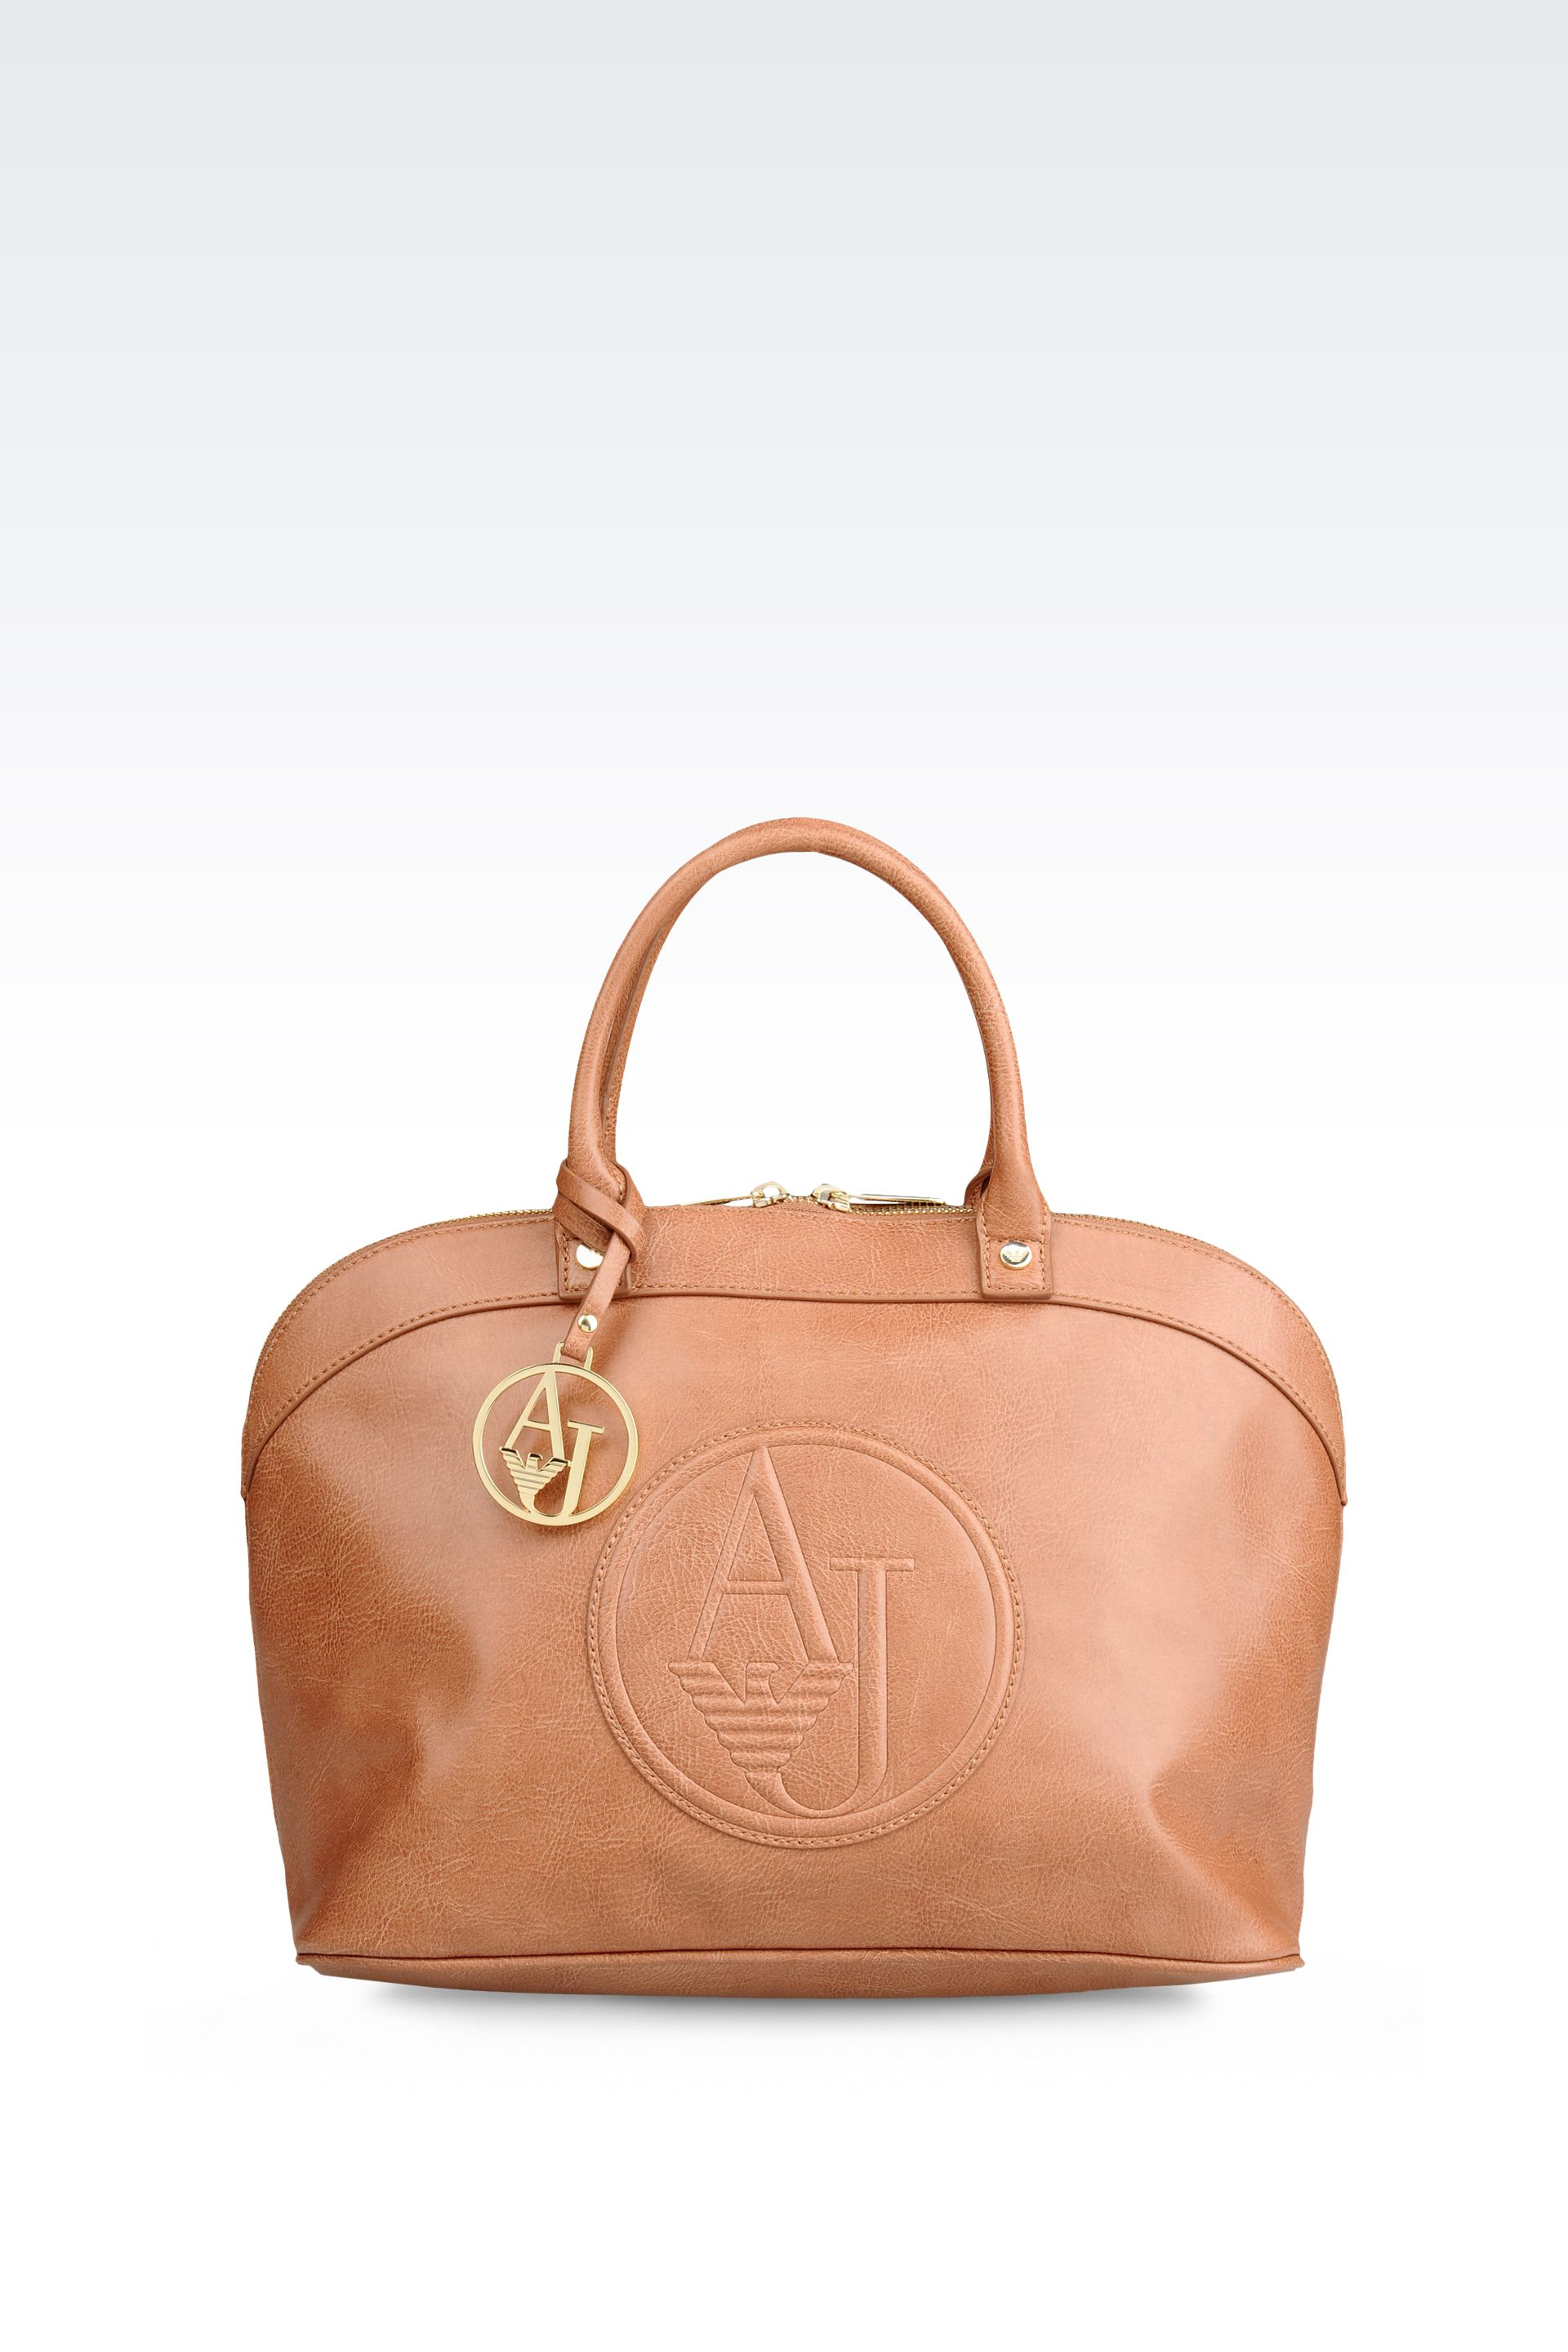 2a81c514e06 Lyst - Armani Jeans Vintage Style Eco Leather Bugatti Bag in Brown